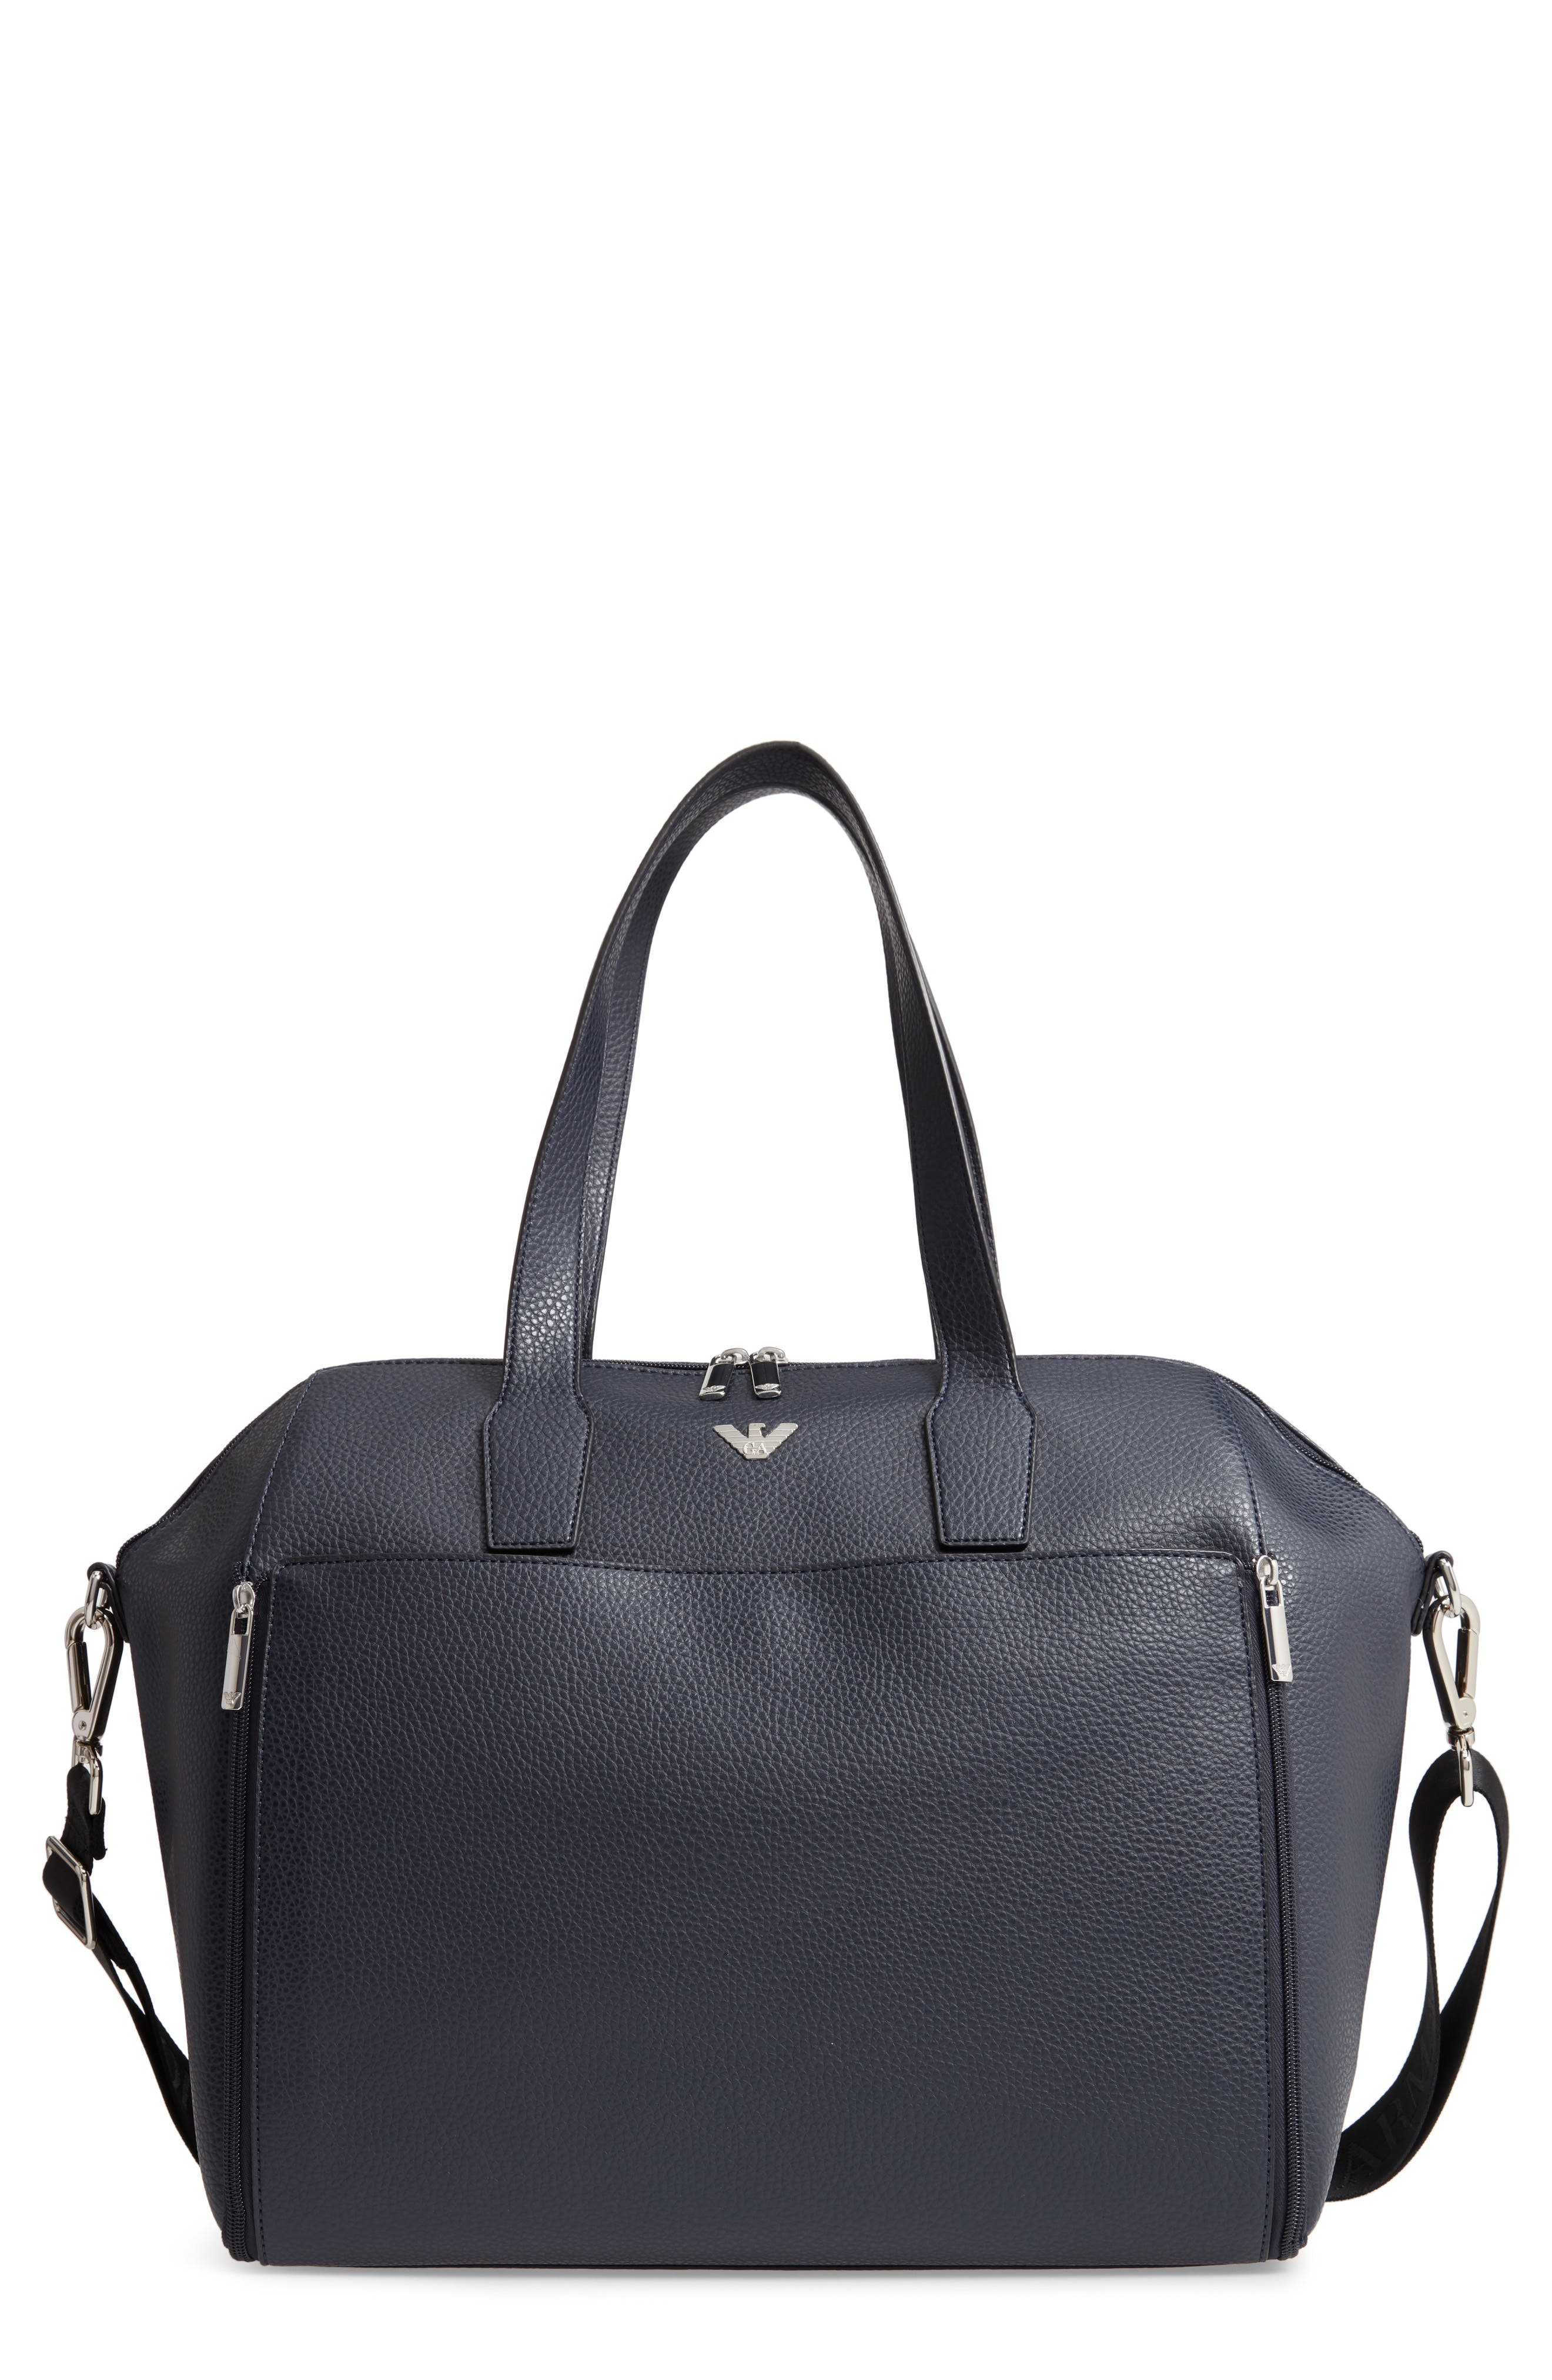 Faux Leather Diaper Bag,                             Main thumbnail 1, color,                             SOLID BLUE NAVY